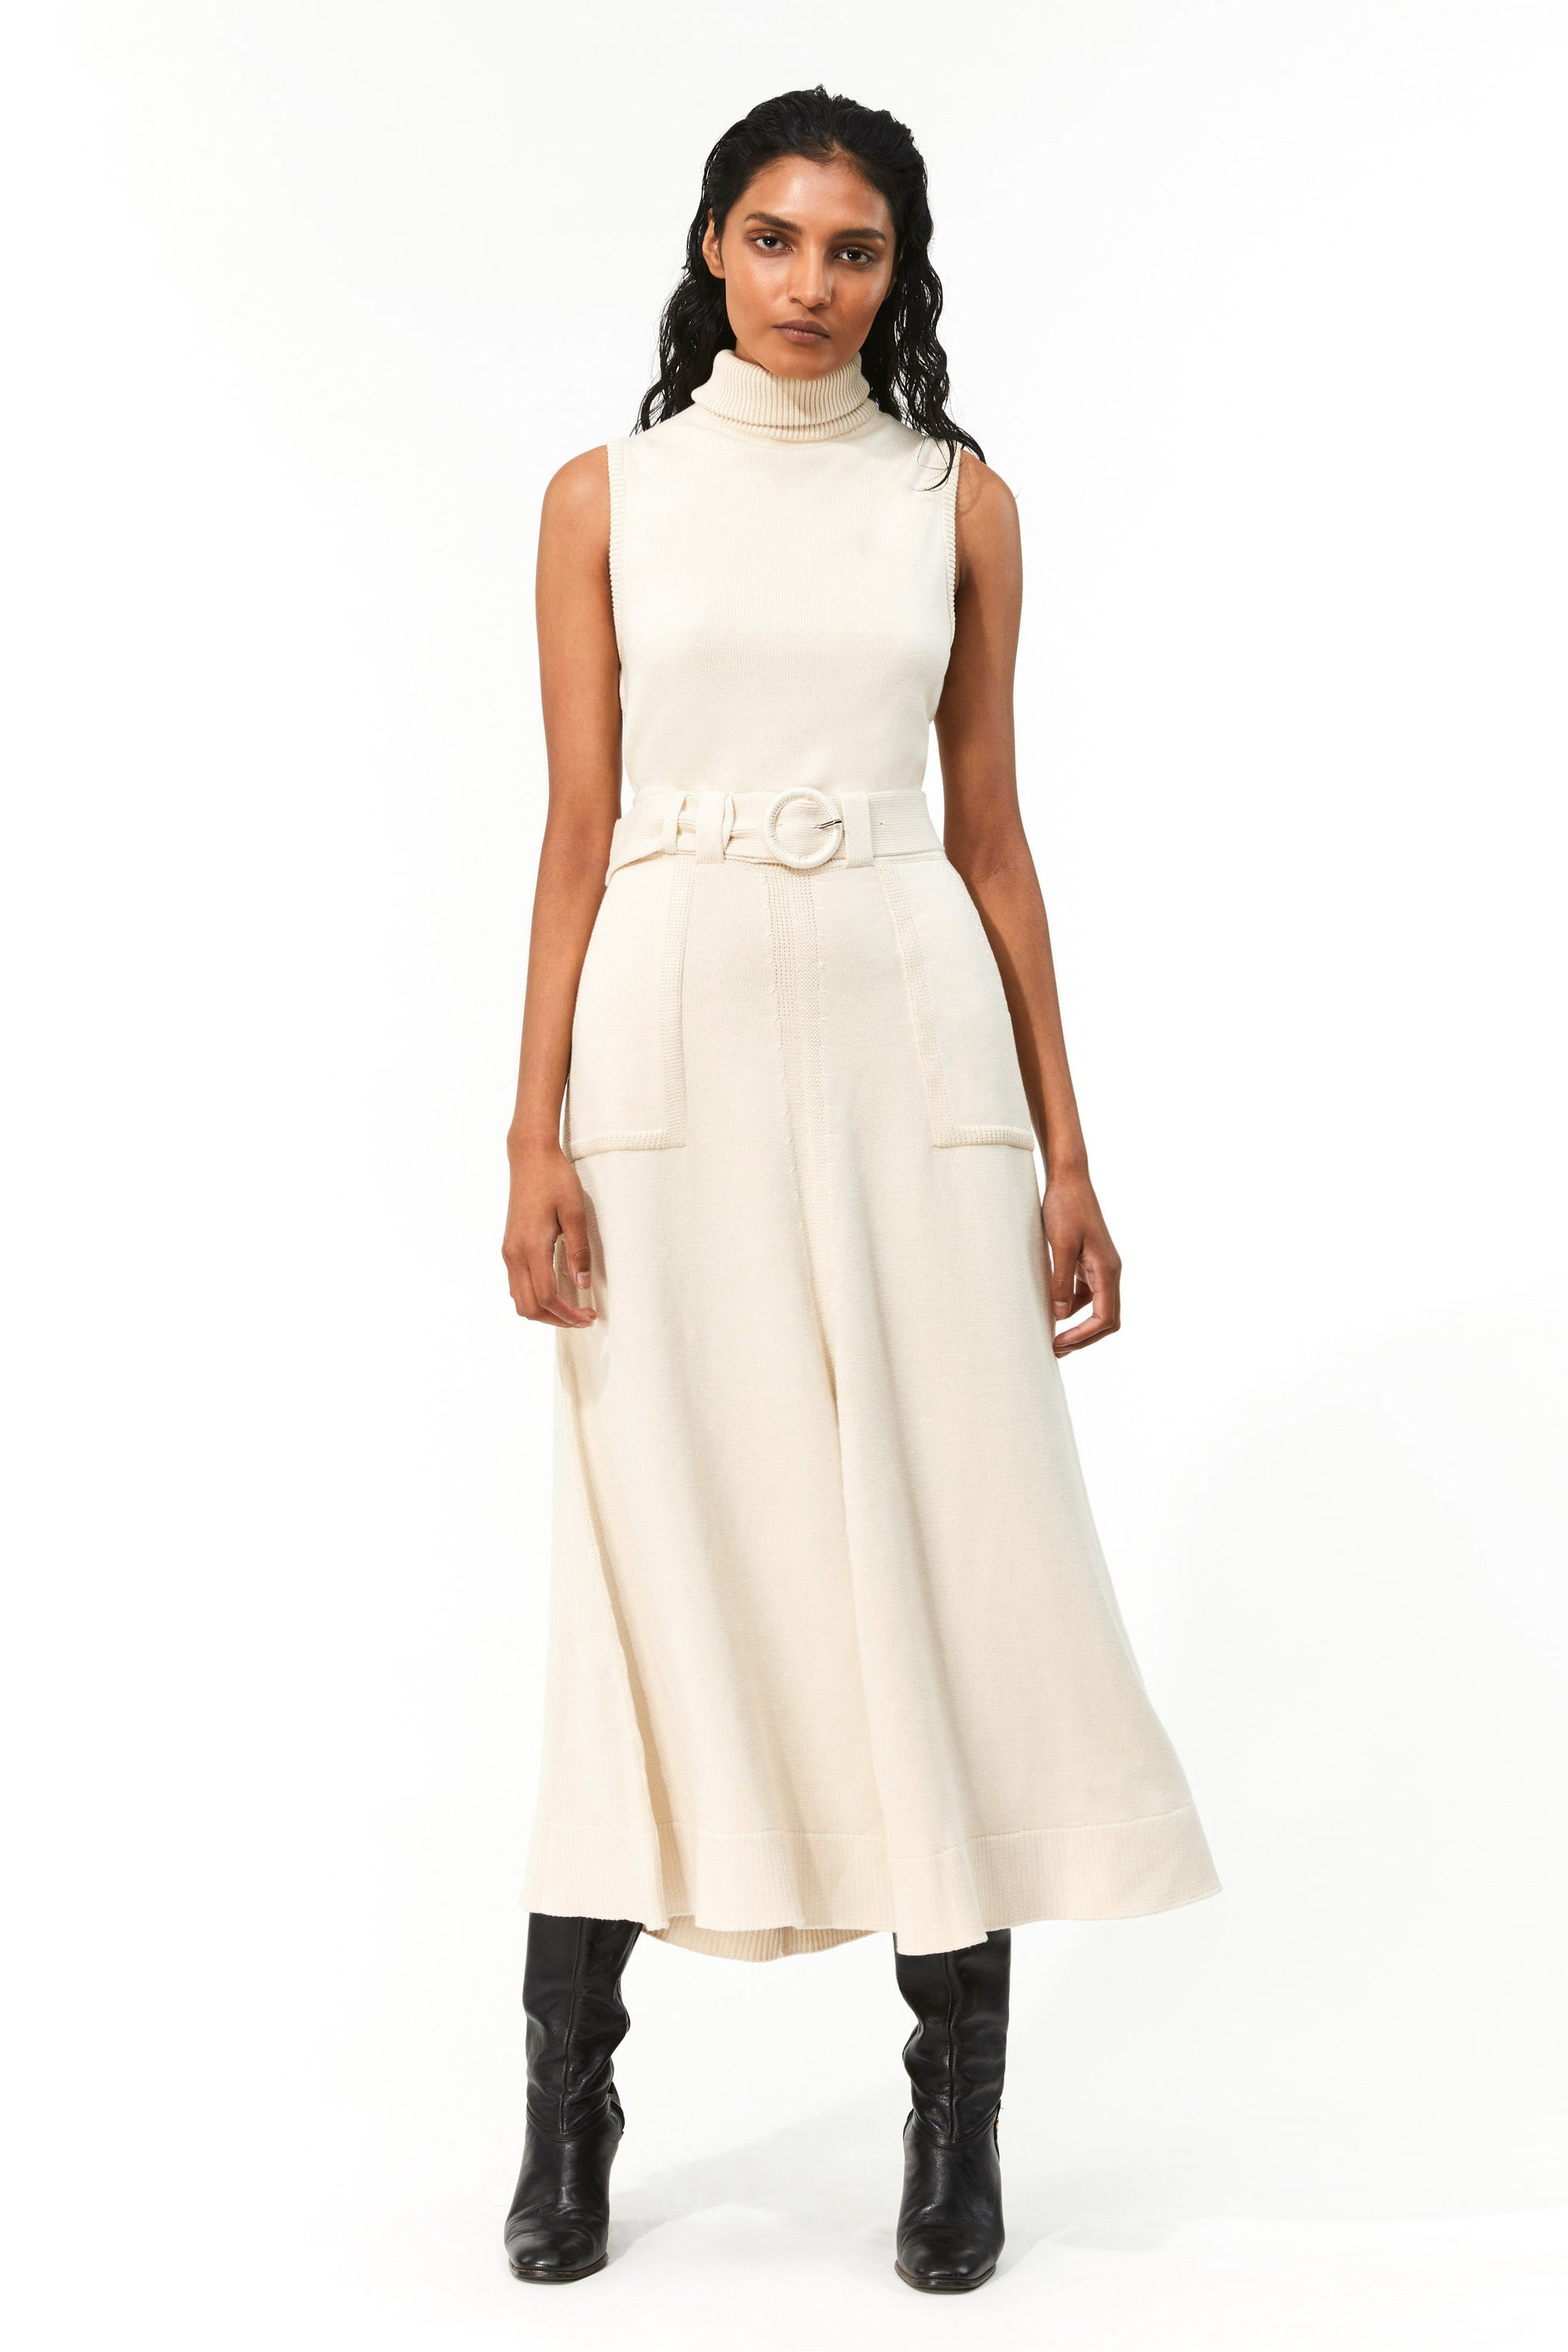 Mara Hoffman Ivory Elle Dress in organic cotton (front)